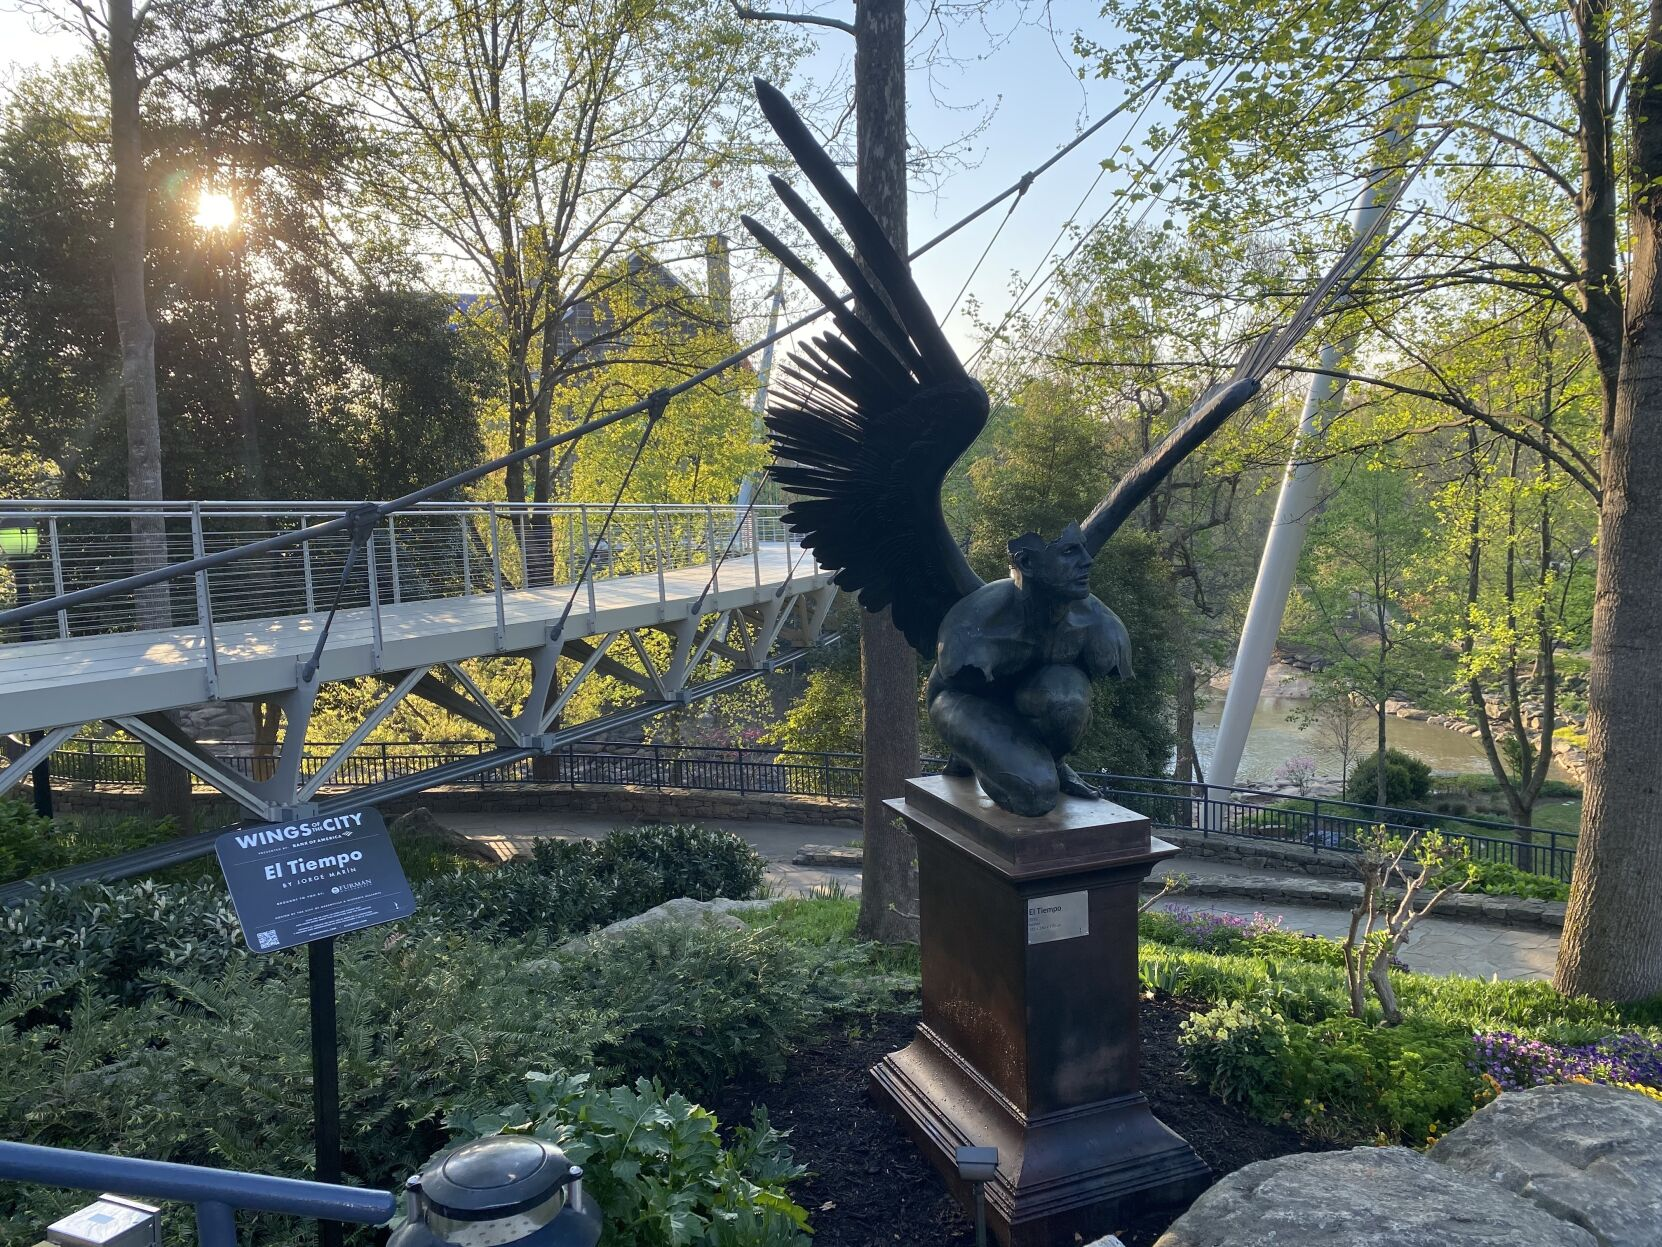 Greenville's public art kerfuffle: County strips funds, city stands firm on Wings exhibit